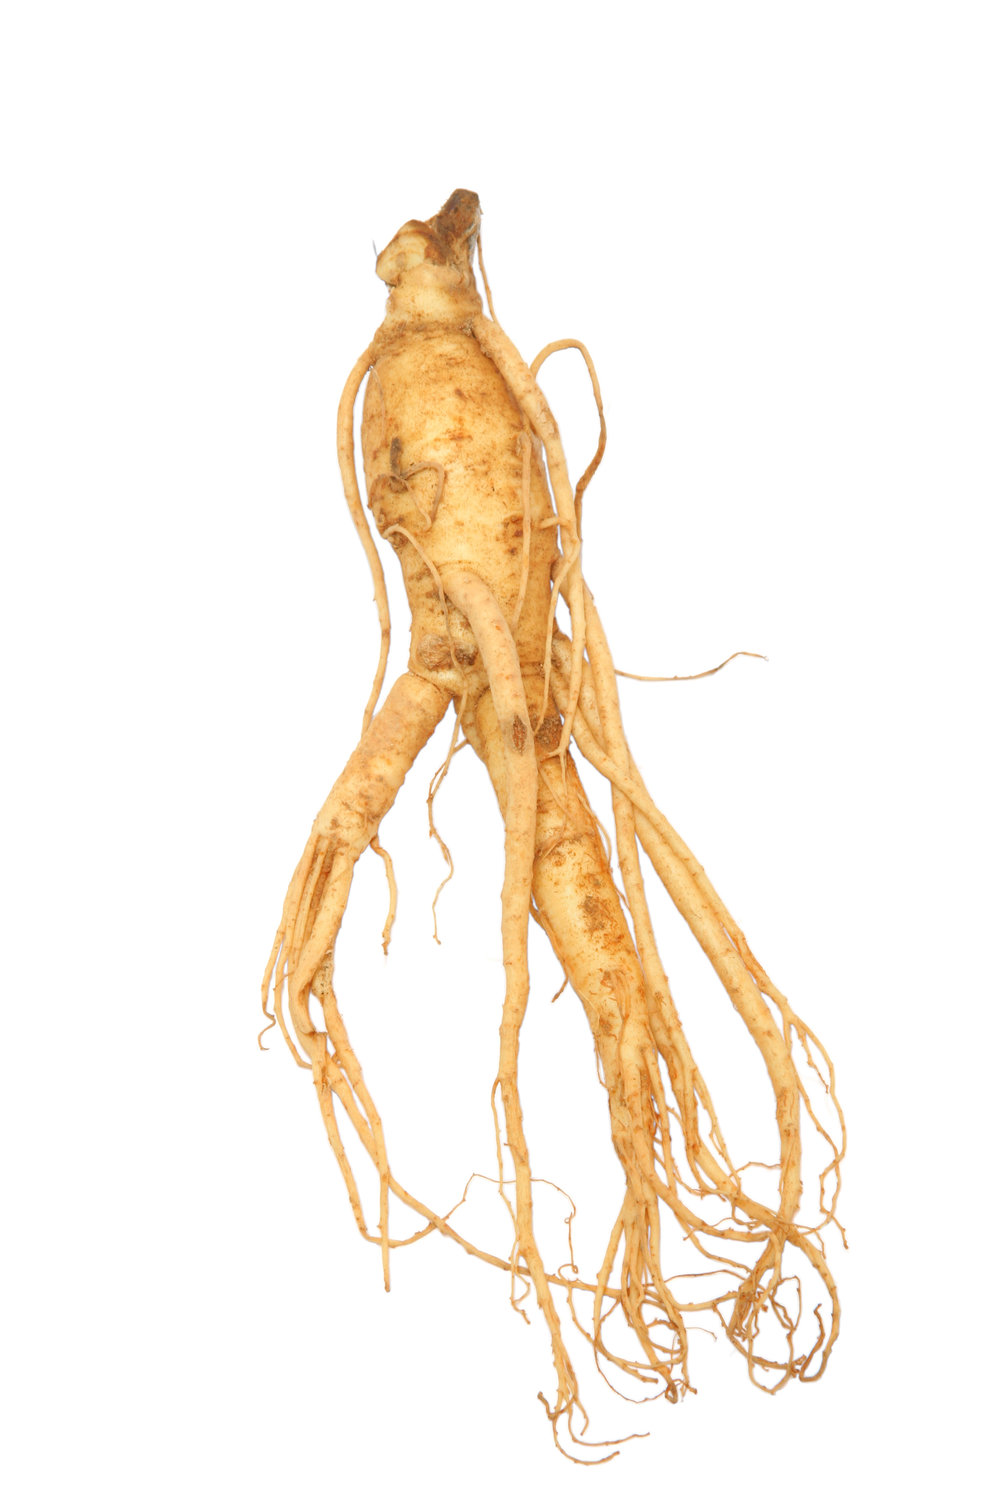 A healthy and properly matured Ginseng root.